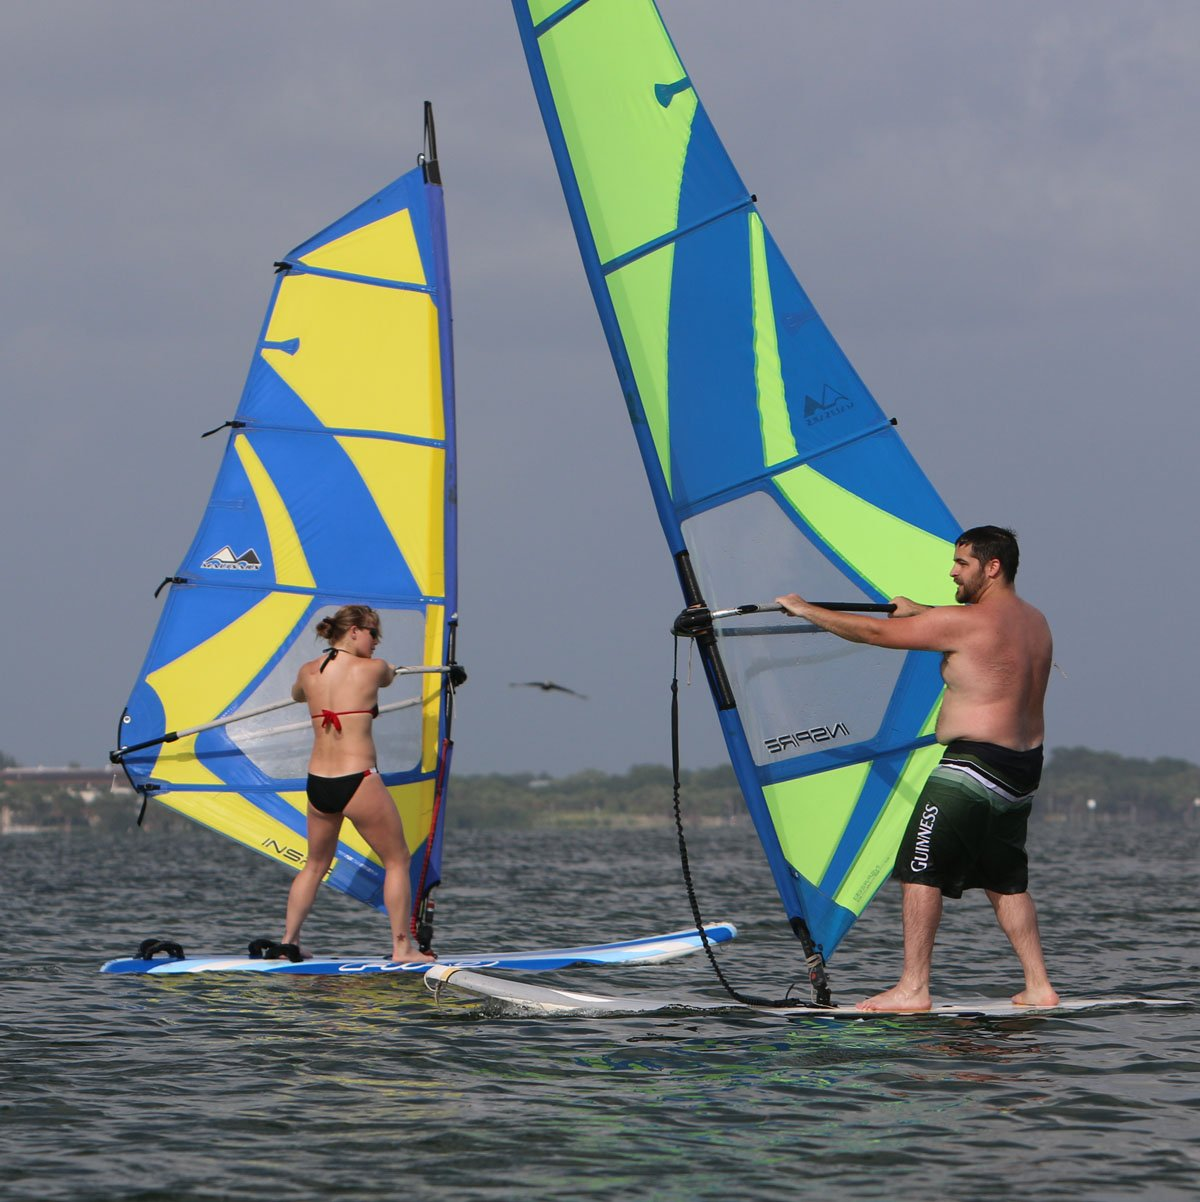 couple windsurfing